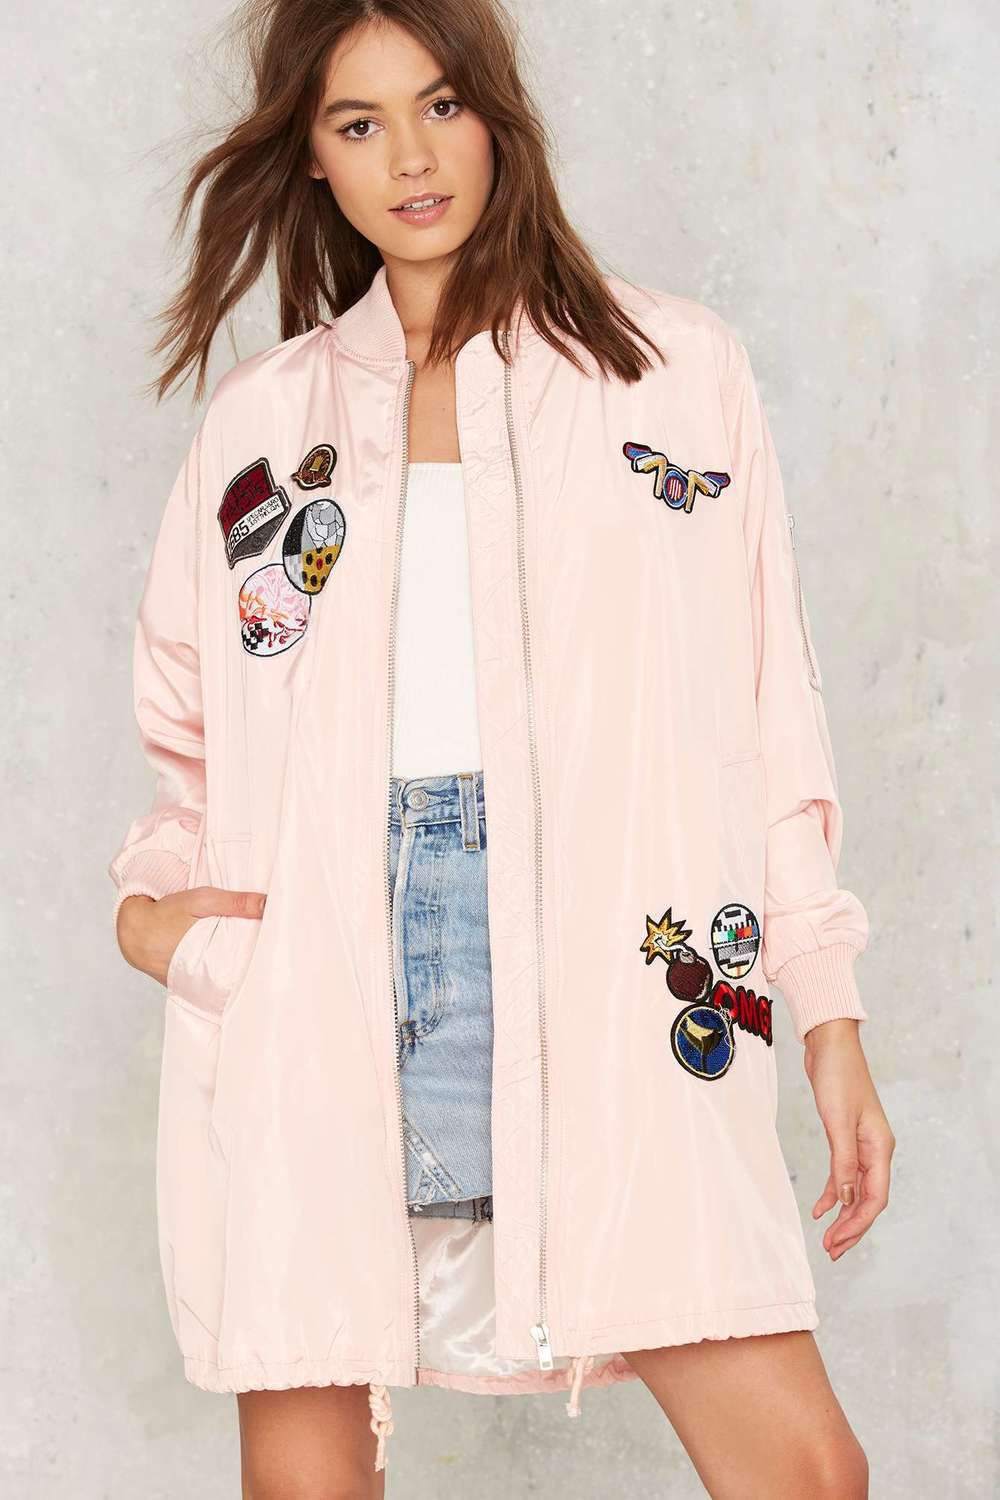 nasty gal jacket.jpg